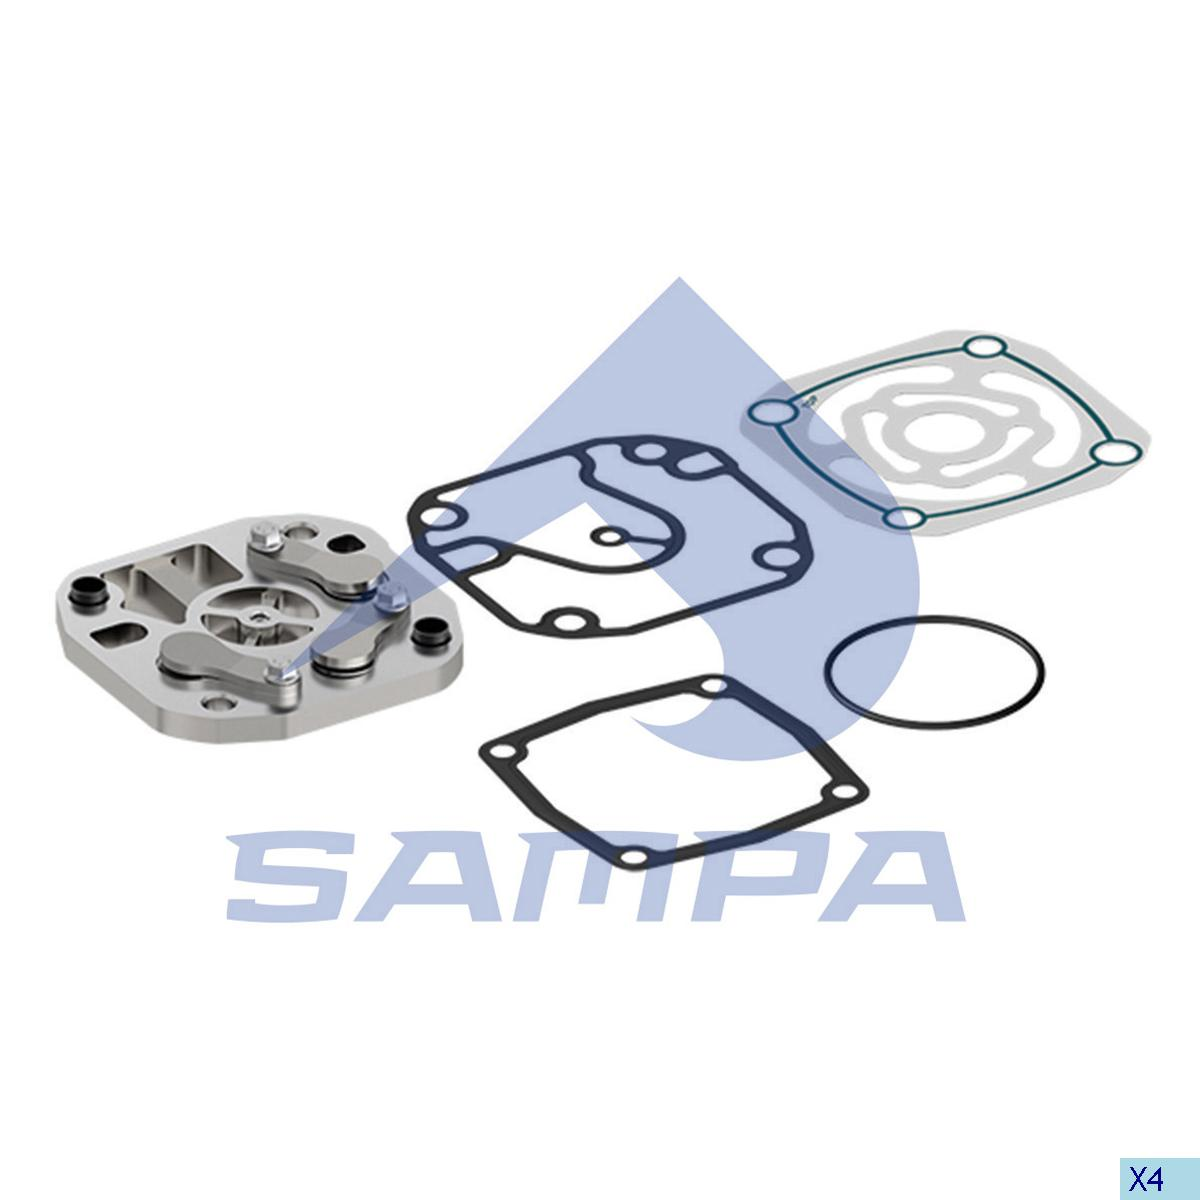 Plate Kit, Cylinder Head, Mercedes, Compressed Air System